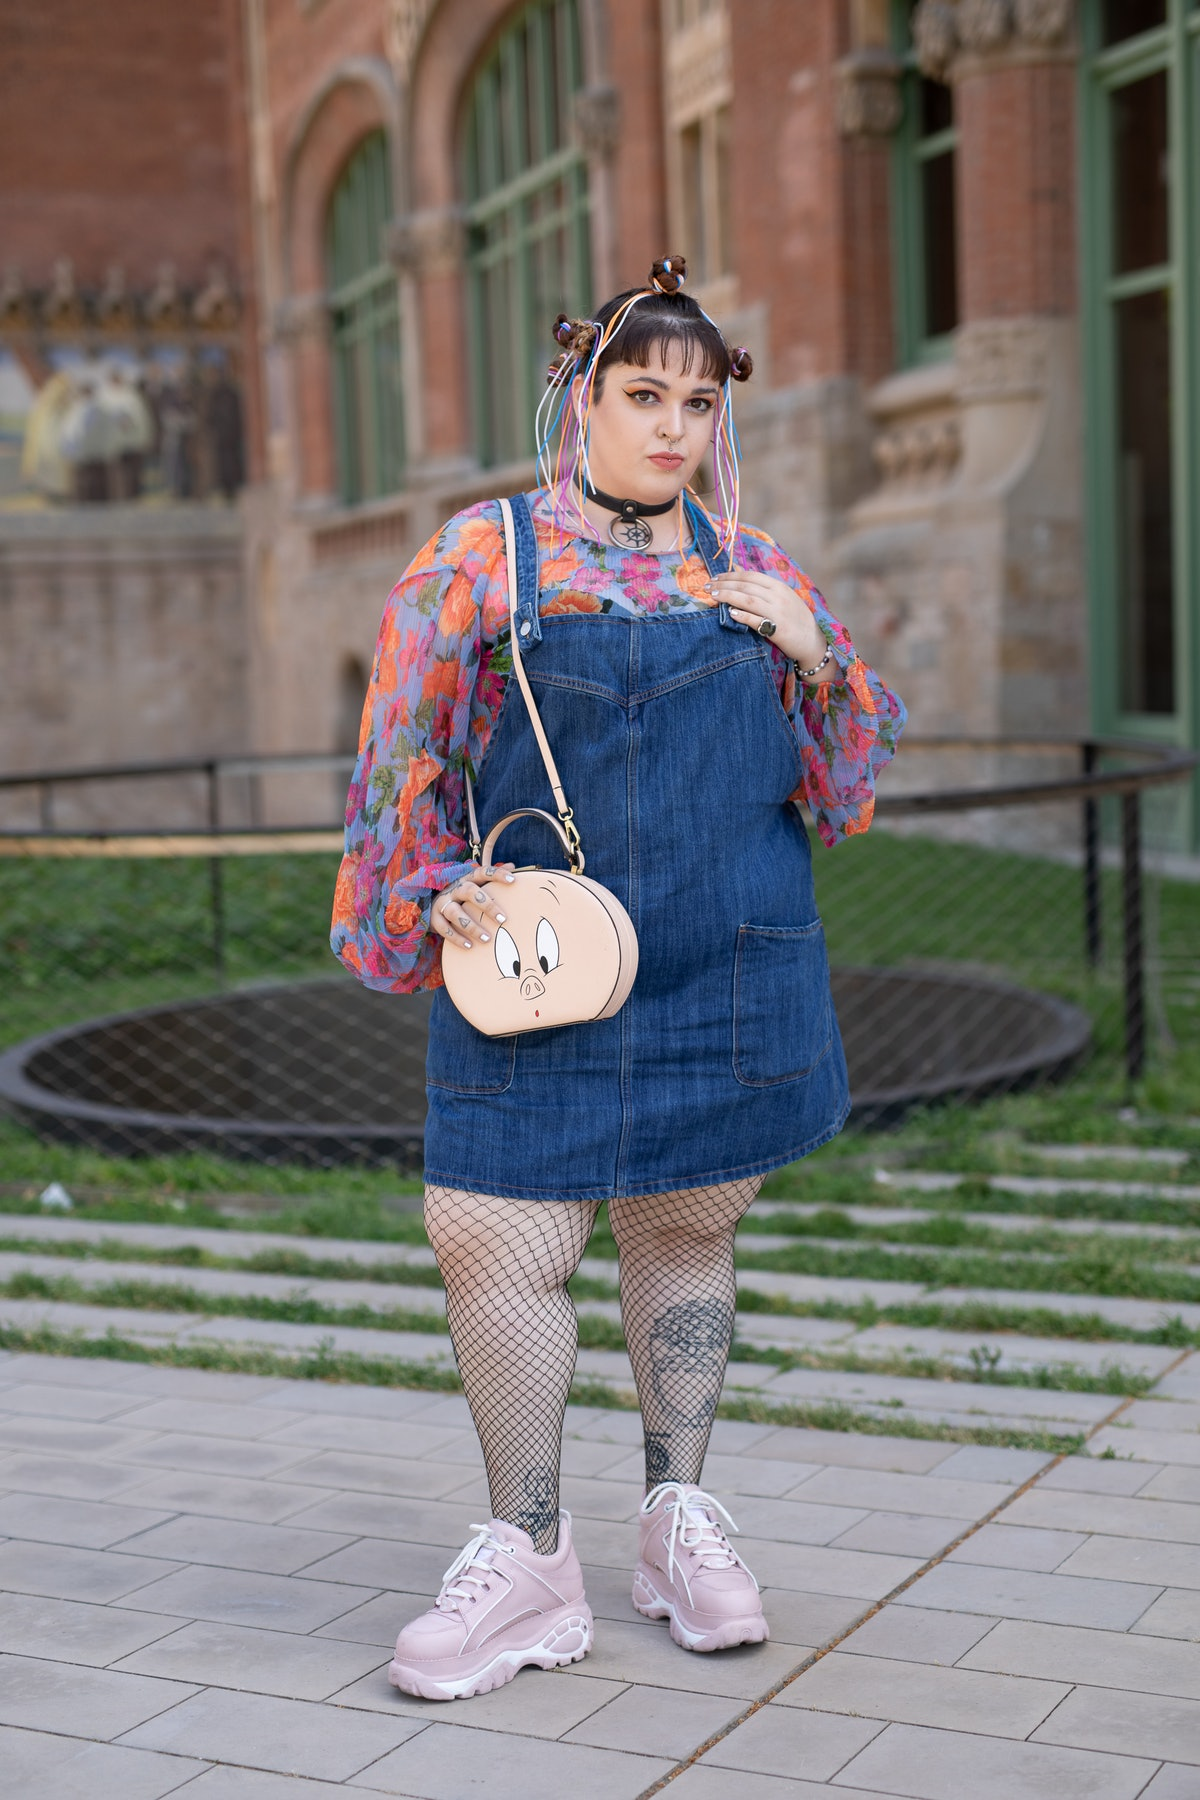 Plus-size influencer beautifully styles a pair of denim overalls as a dress with a long sleeve top, ...